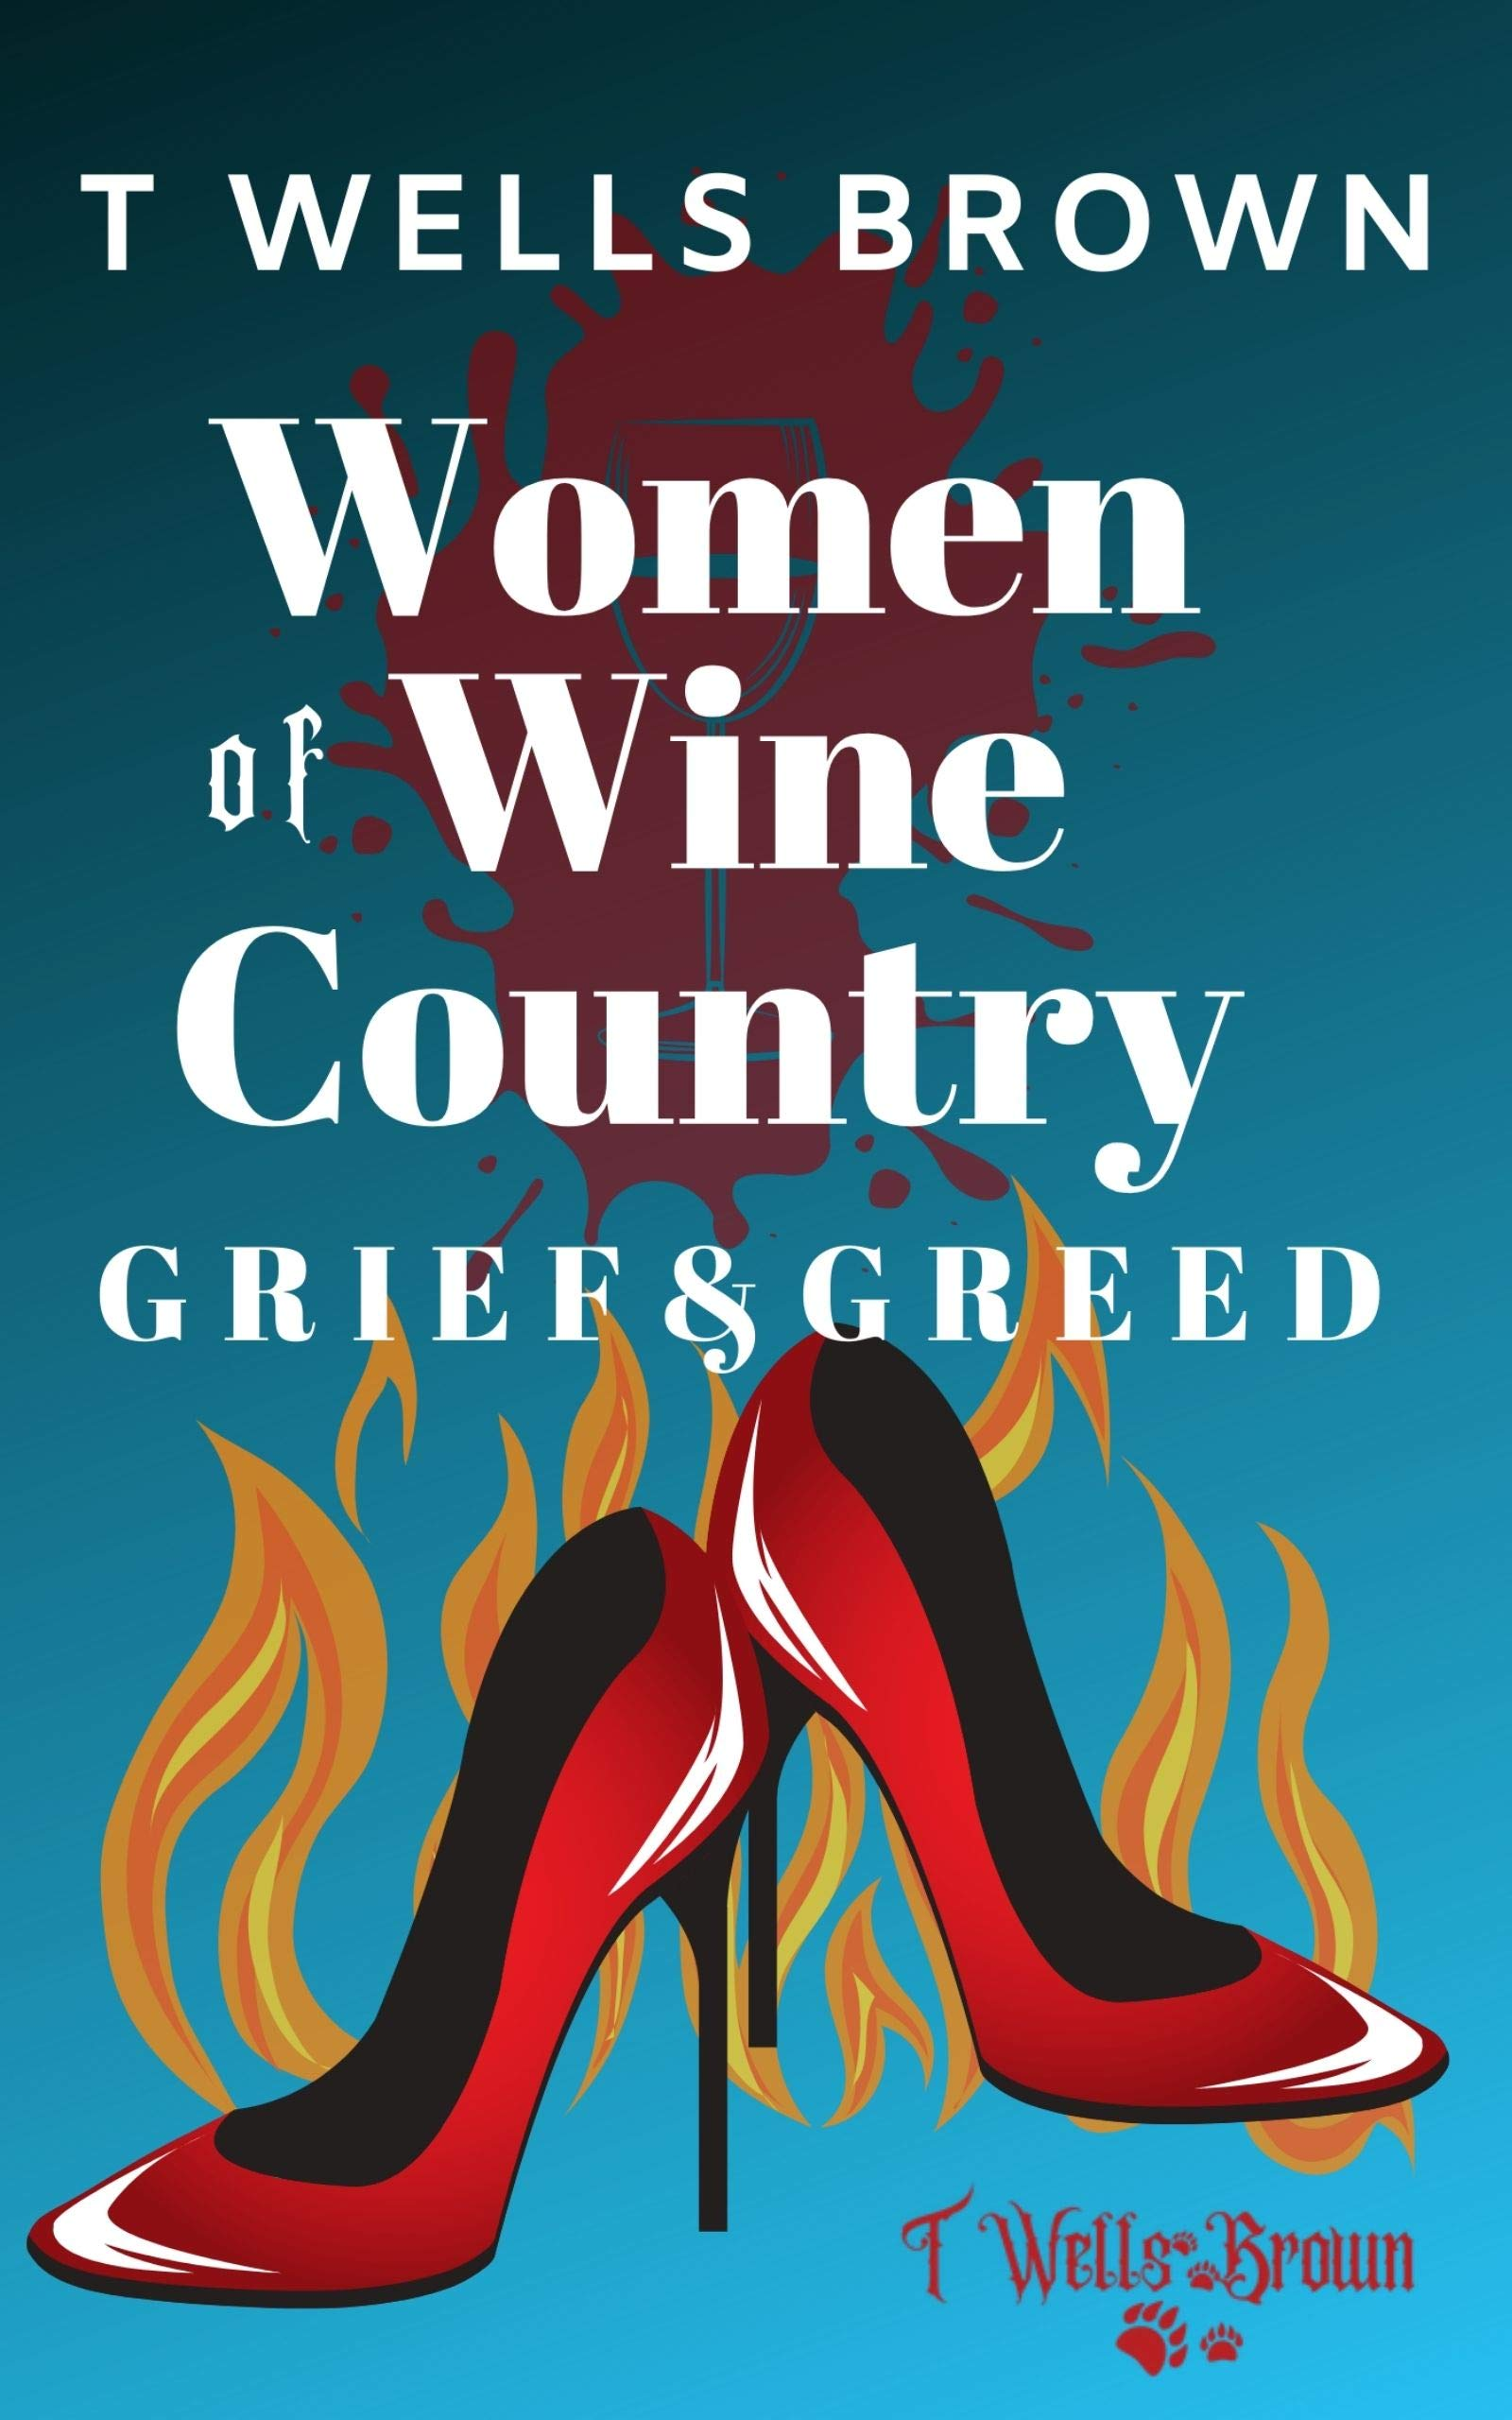 Women of Wine Country: Grief & Greed: Women of Wine Country